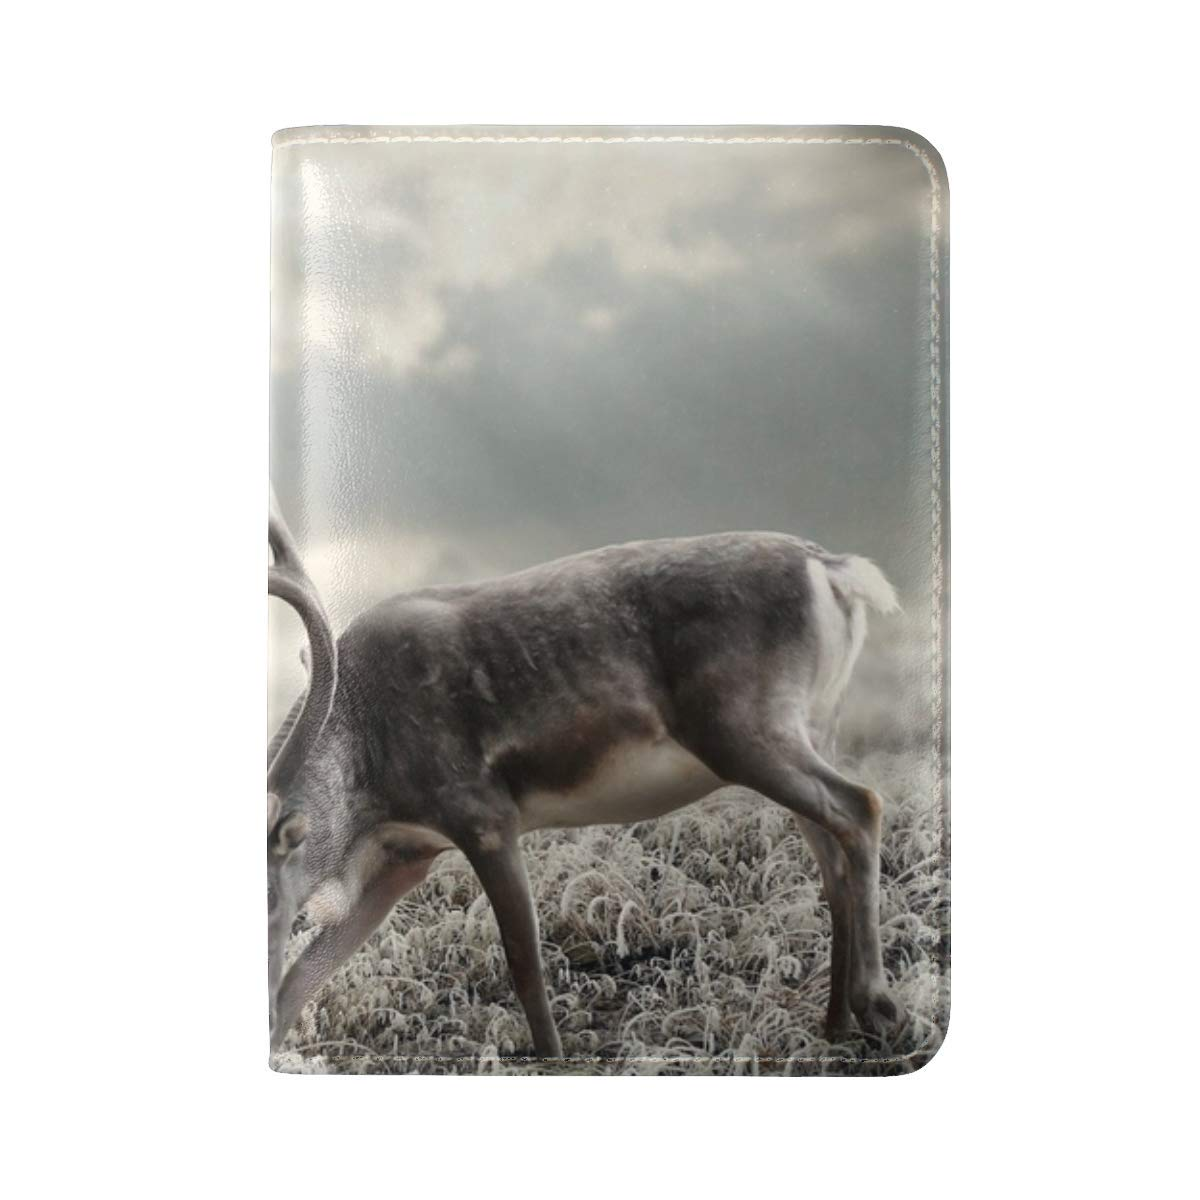 Deer Nature Walking Black And White Leather Passport Holder Cover Case Travel One Pocket